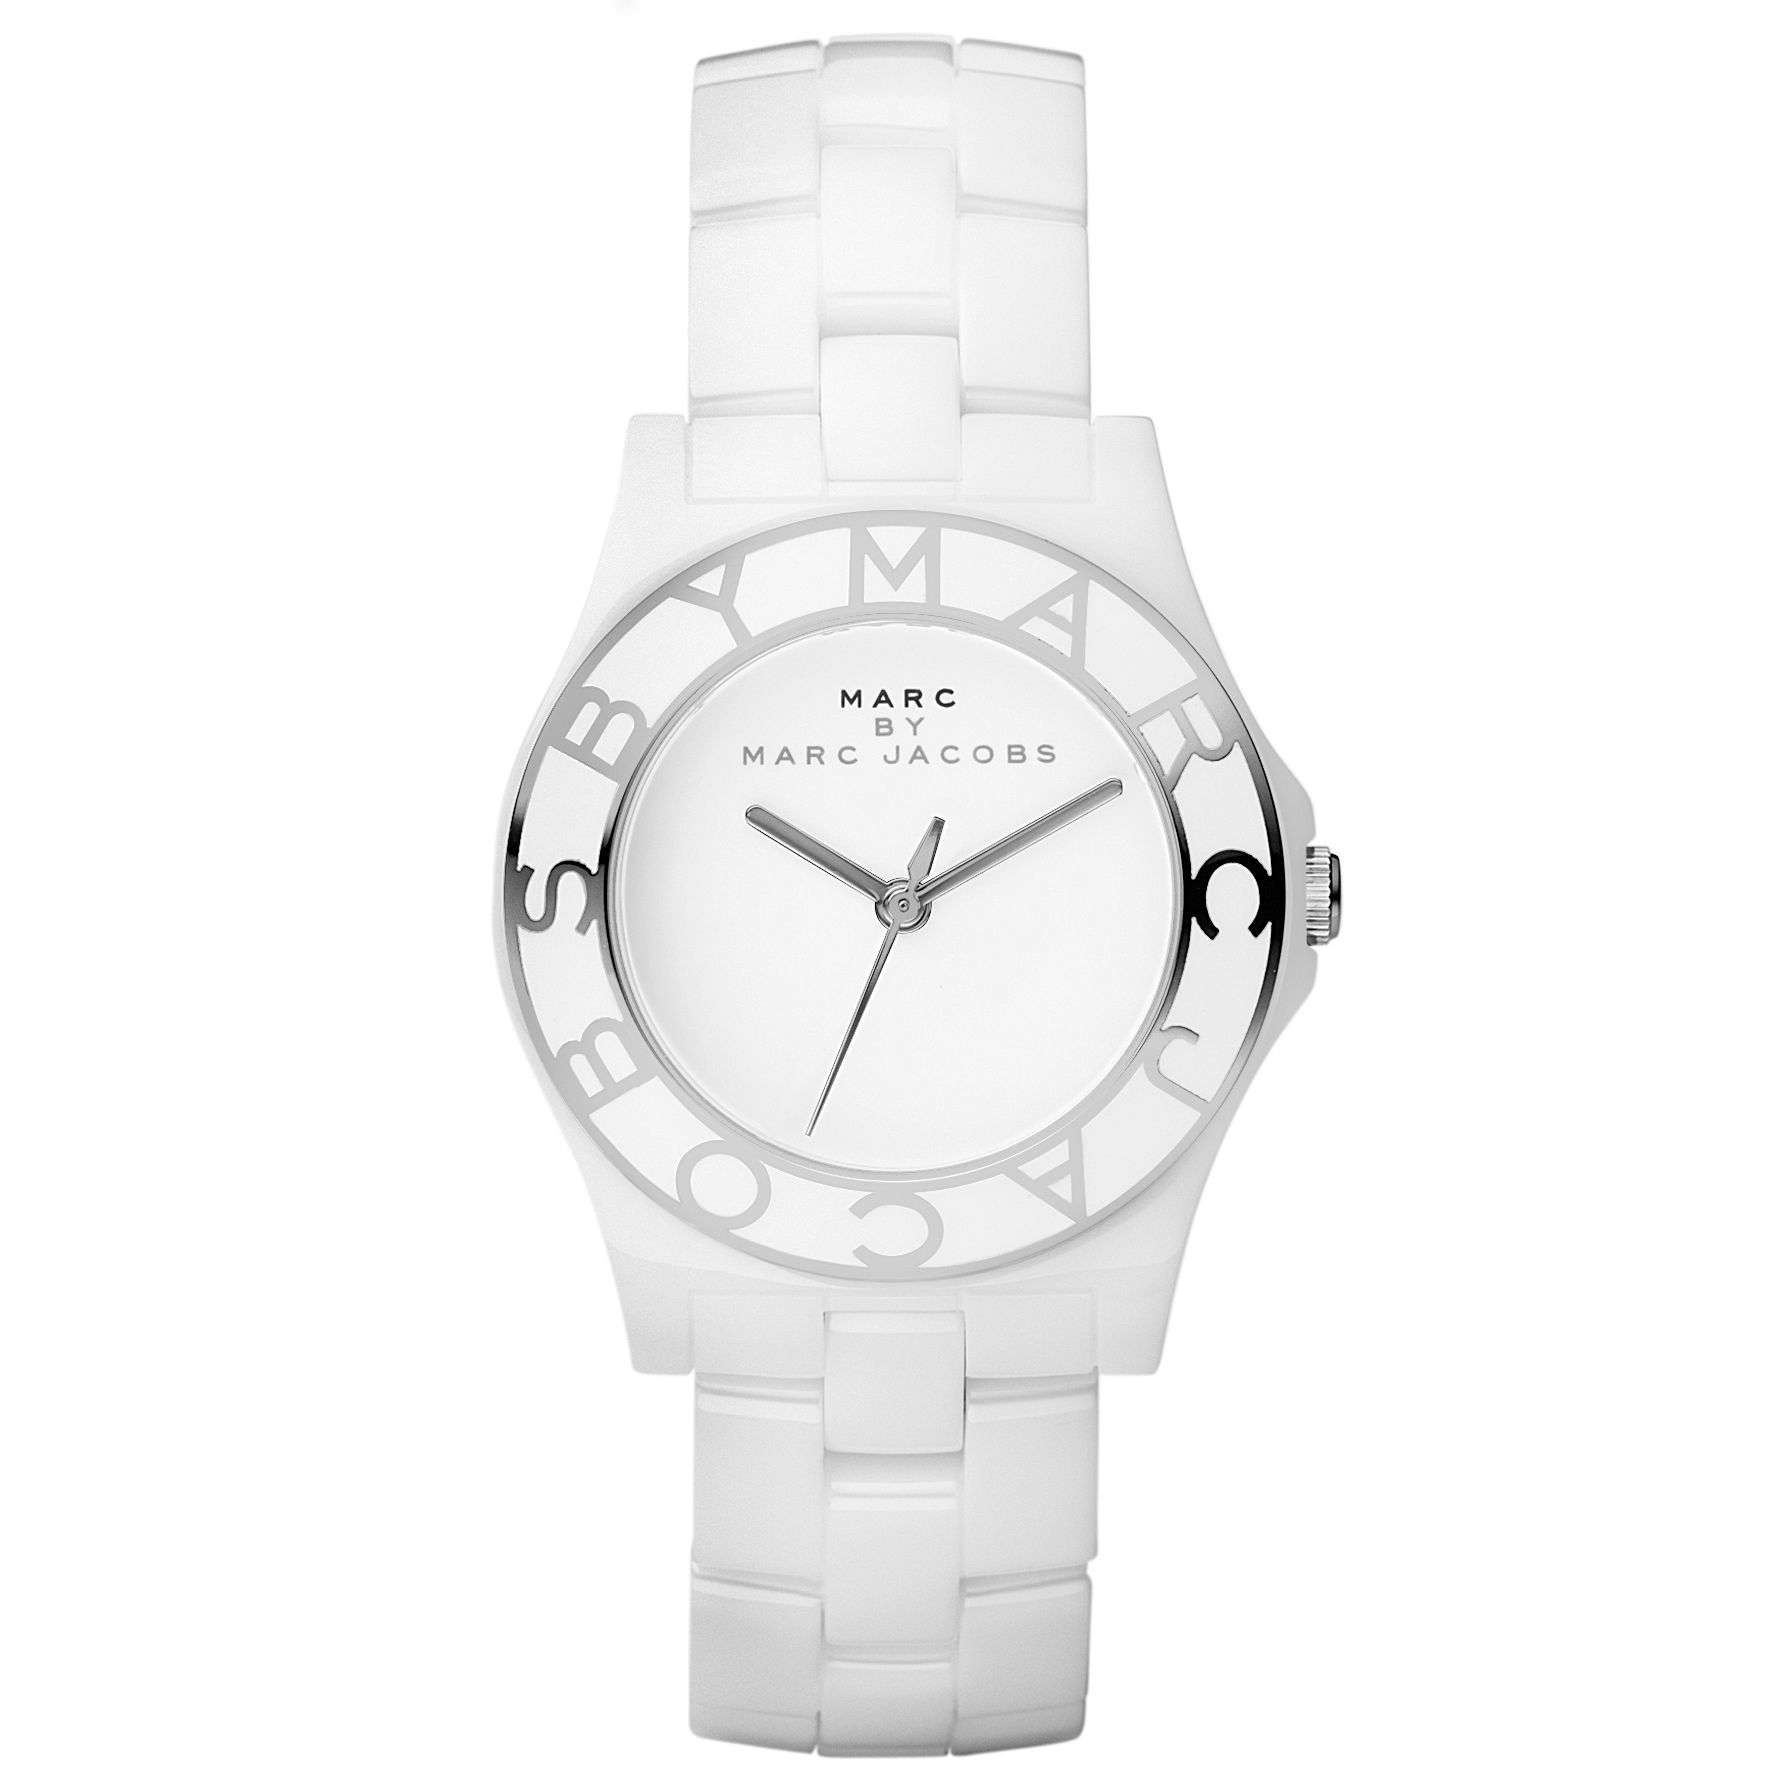 Marc by Marc Jacobs MBM9500 Women